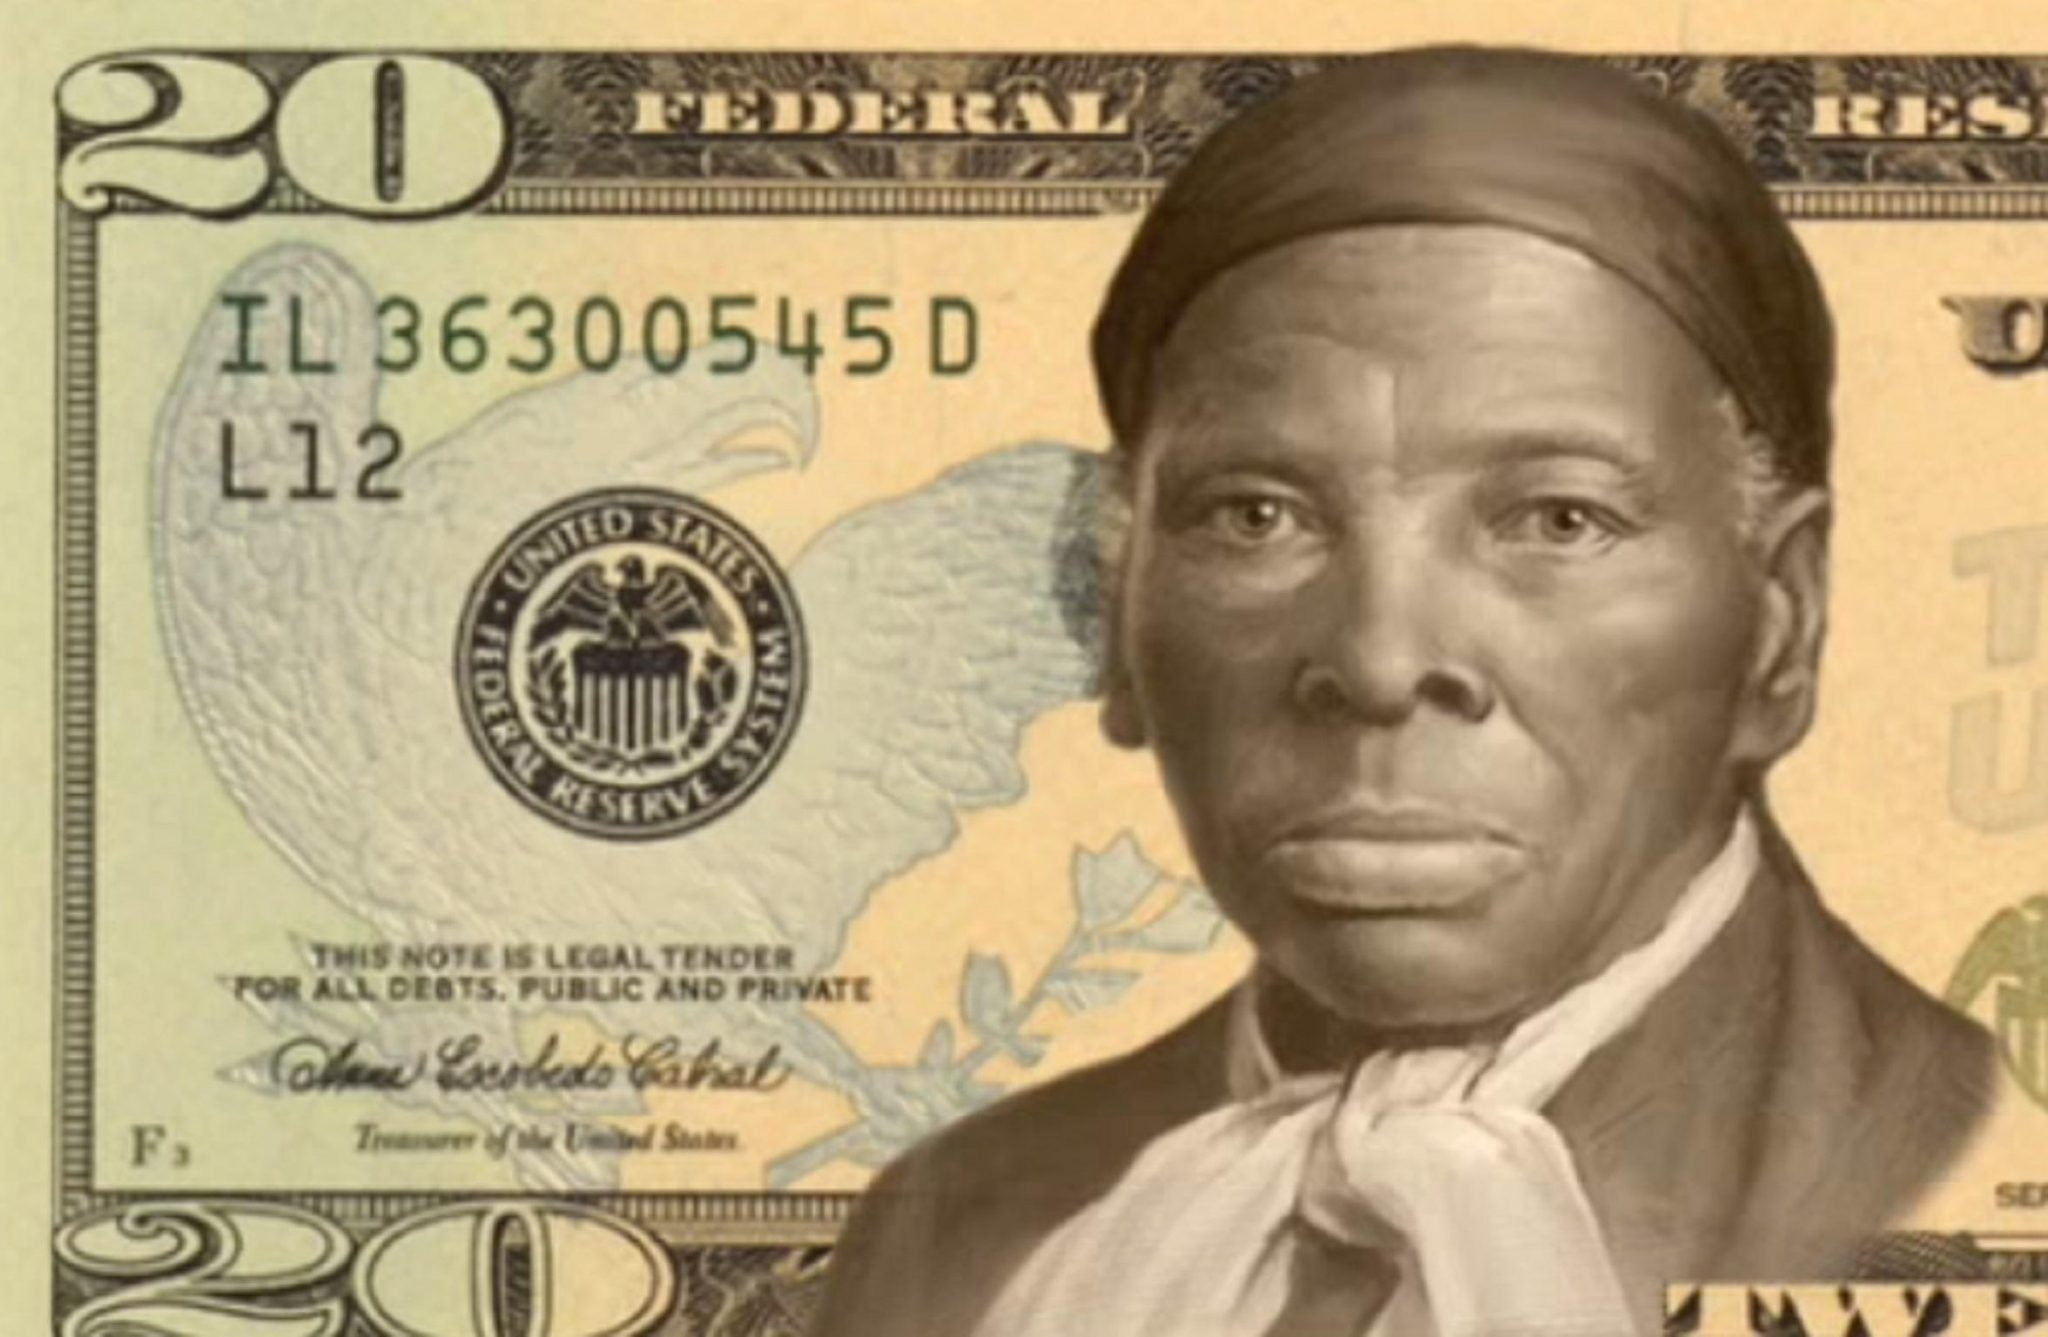 Harriet Tubman's face is superimposed on a 20-dollar bill.